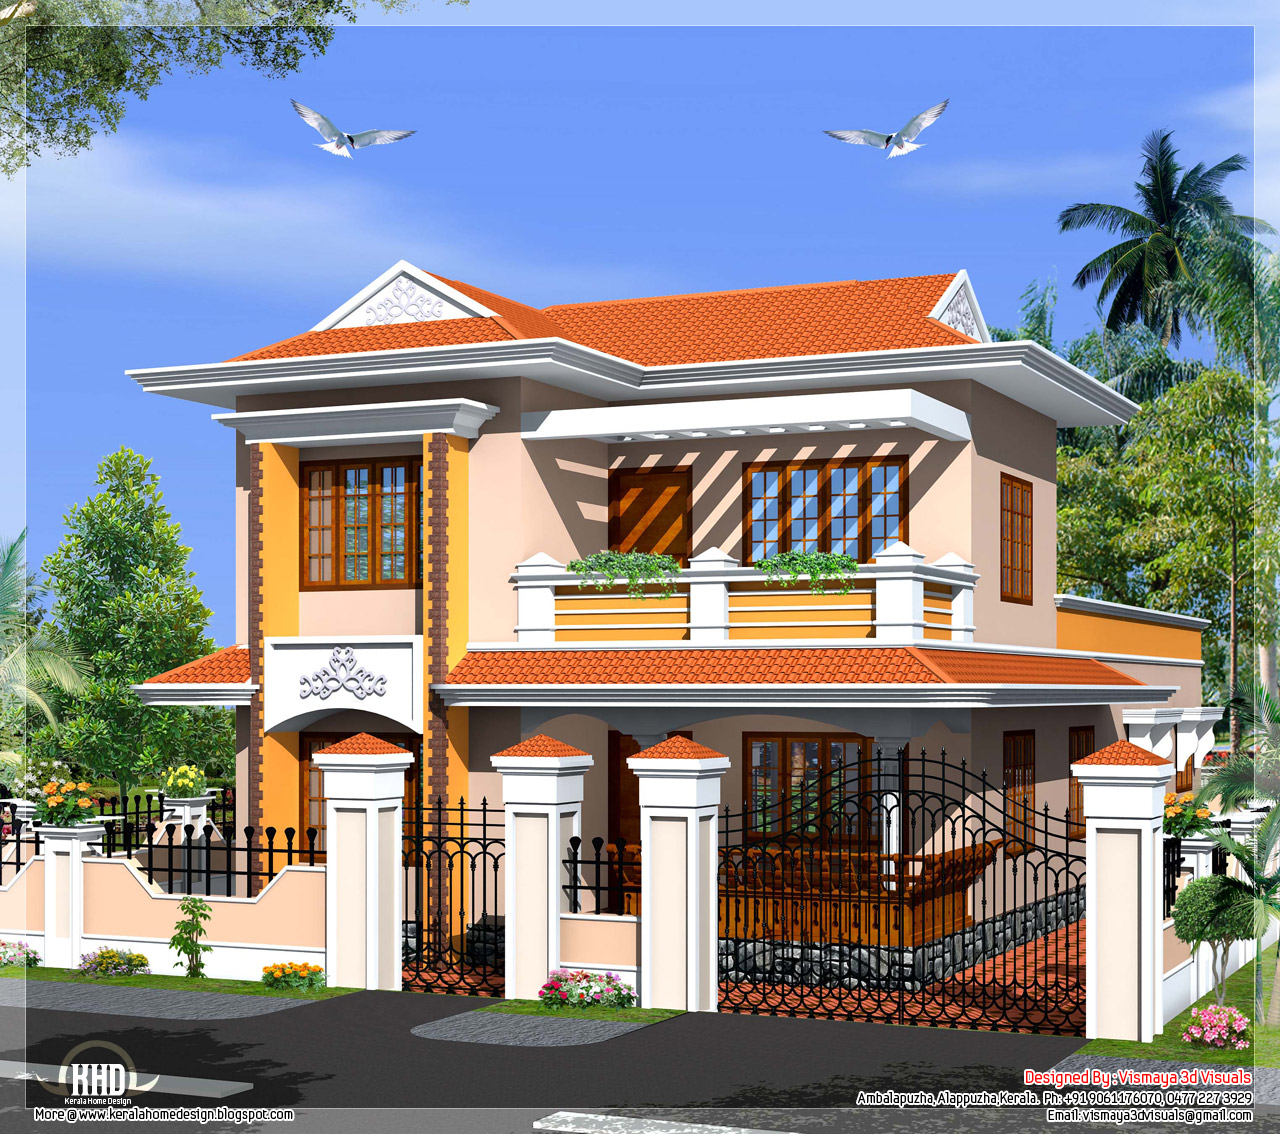 Kerala model villa in 2110 in square feet house design plans New home models